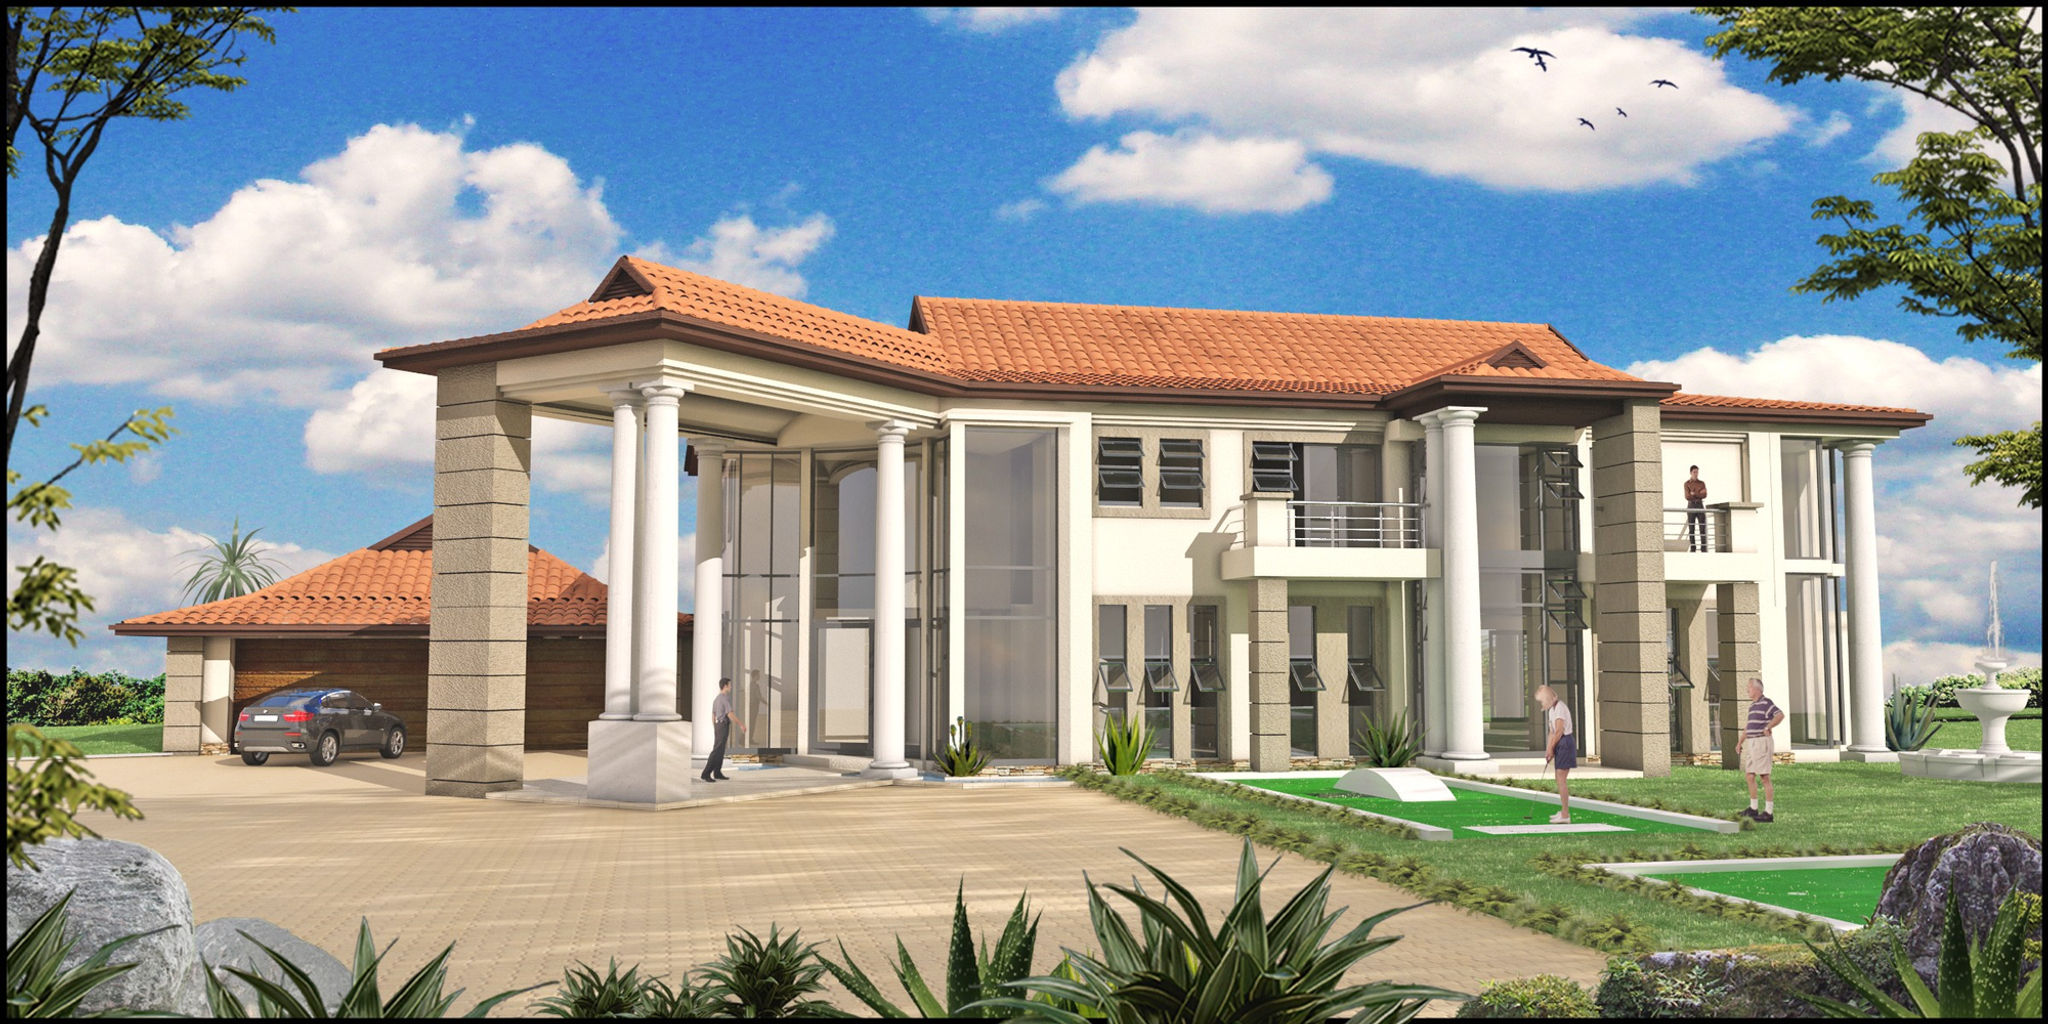 House plans and design house plans south africa for sale for African house designs